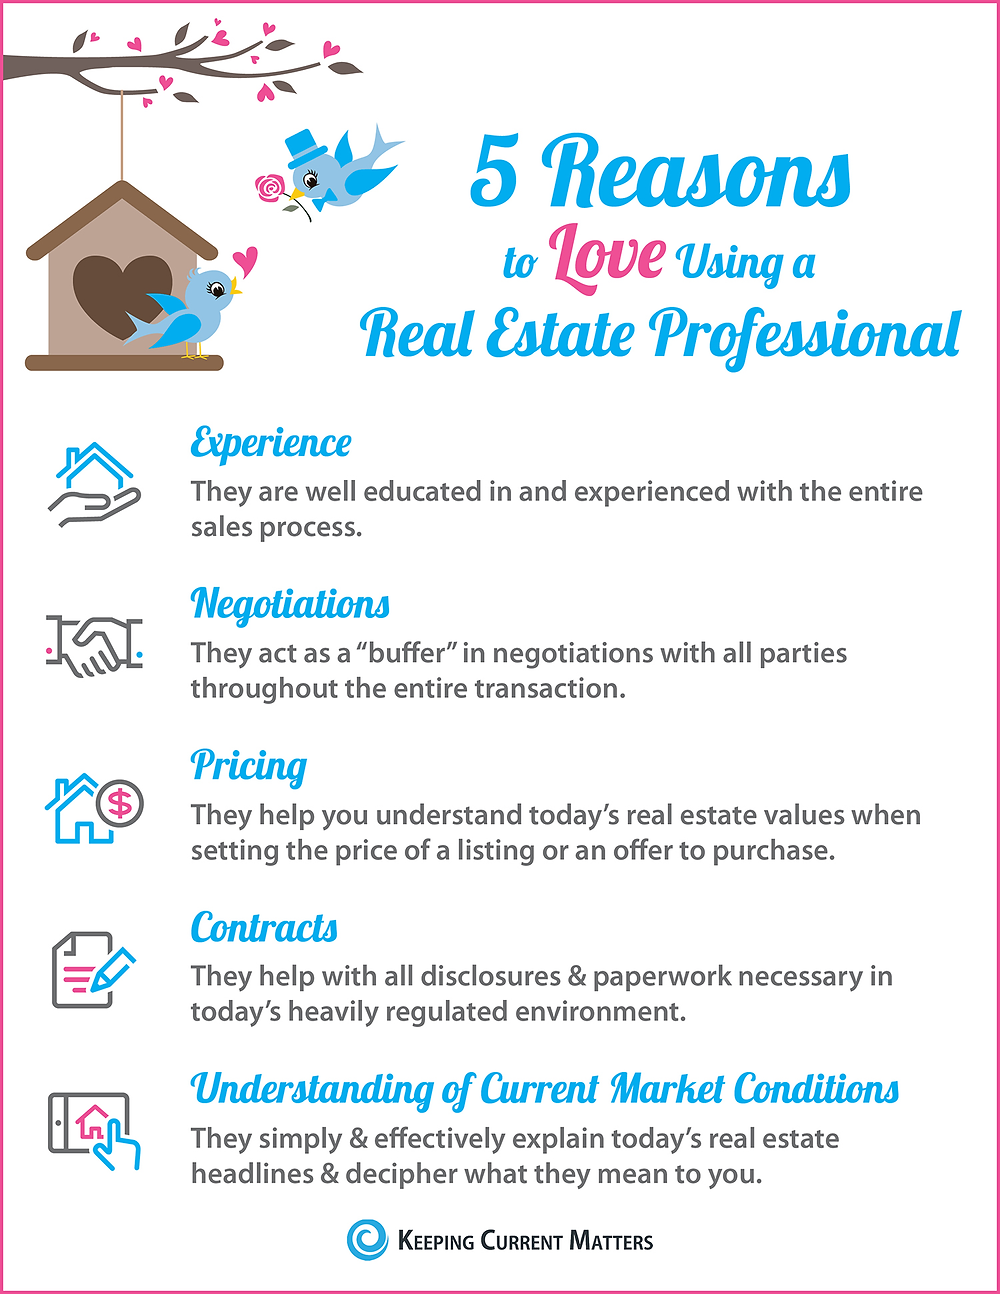 5 reasons to love using a real estate professional